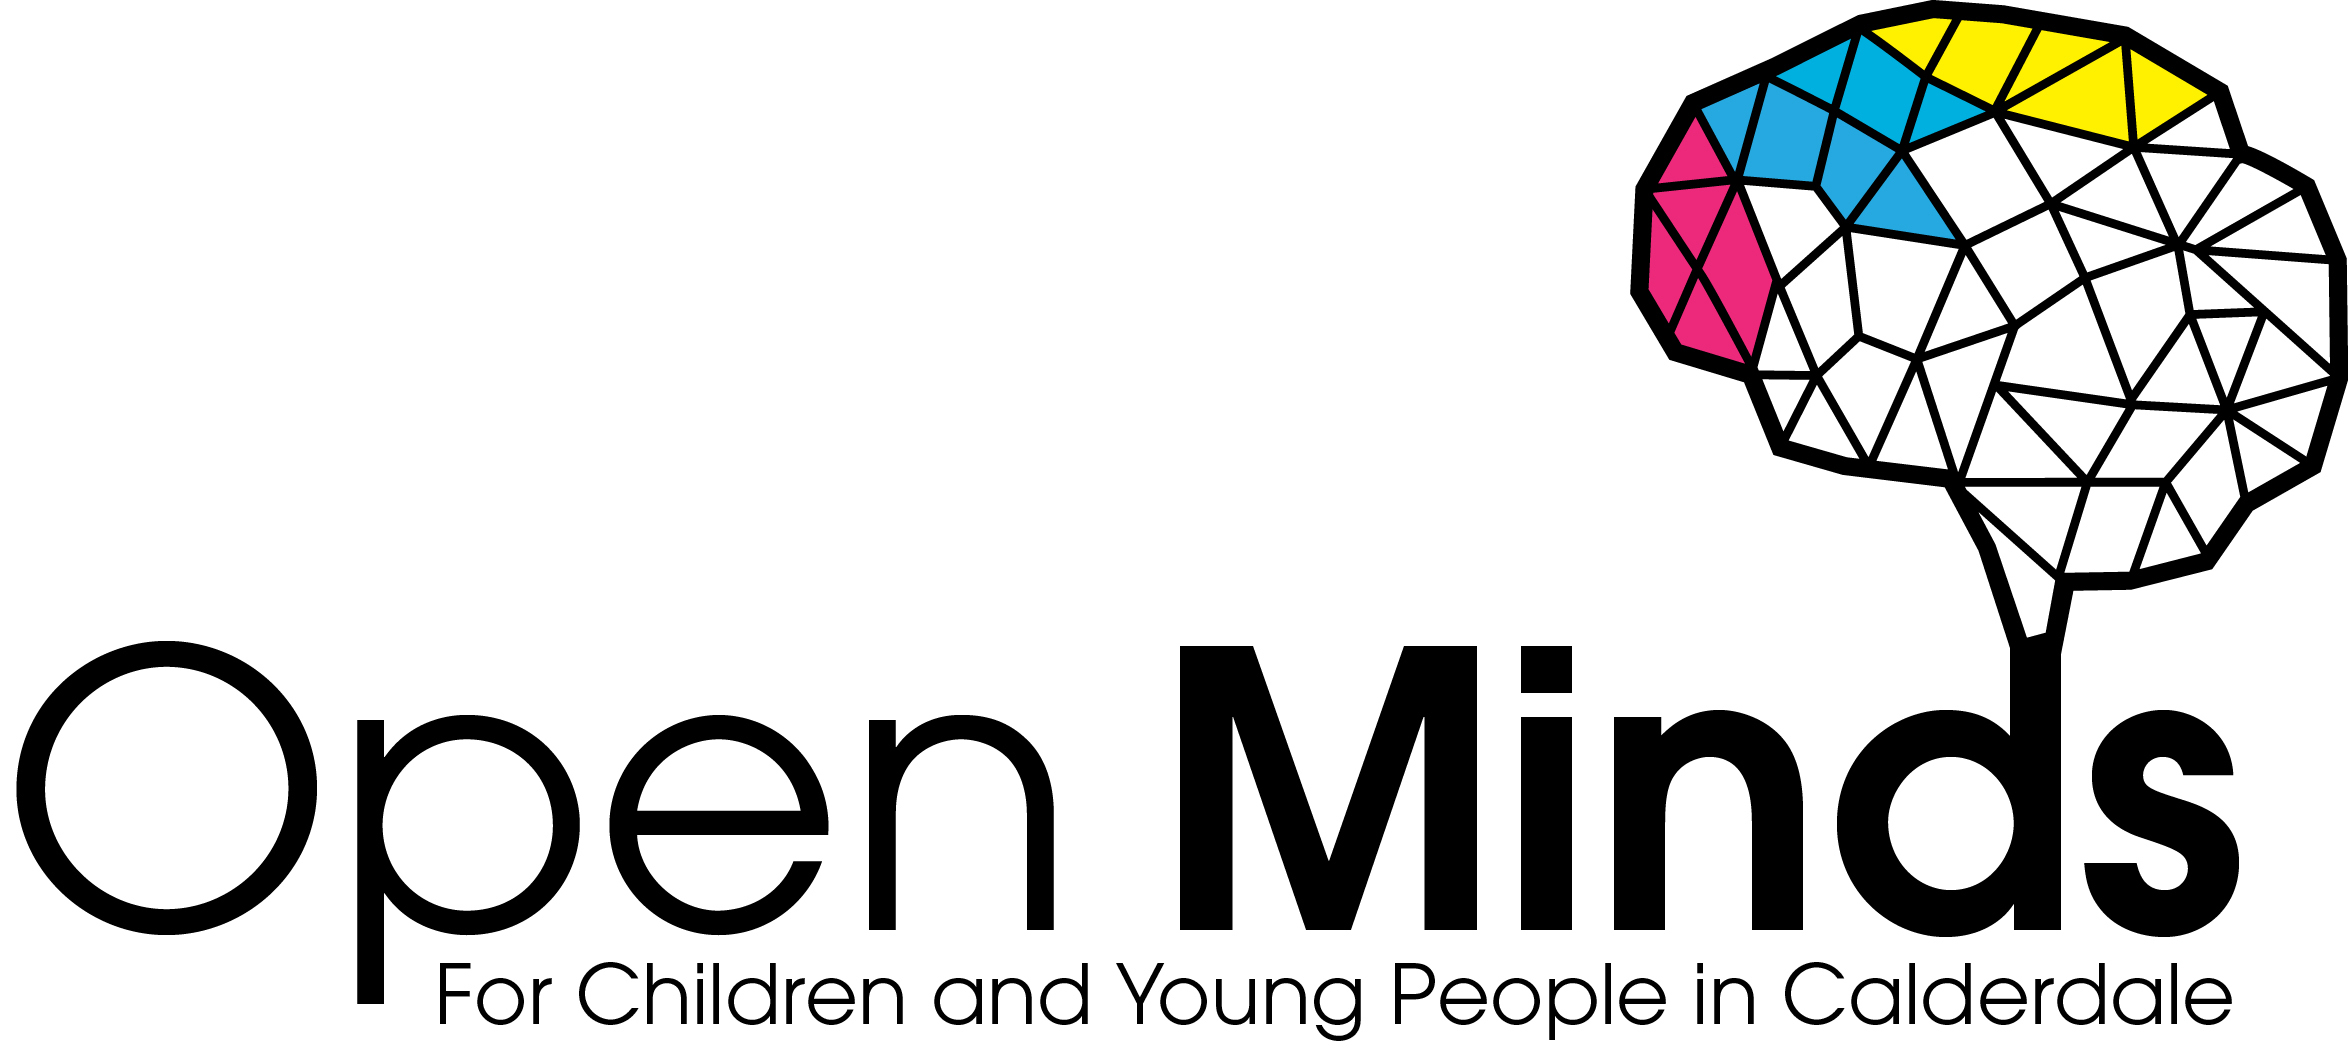 Image result for open minds calderdale logo